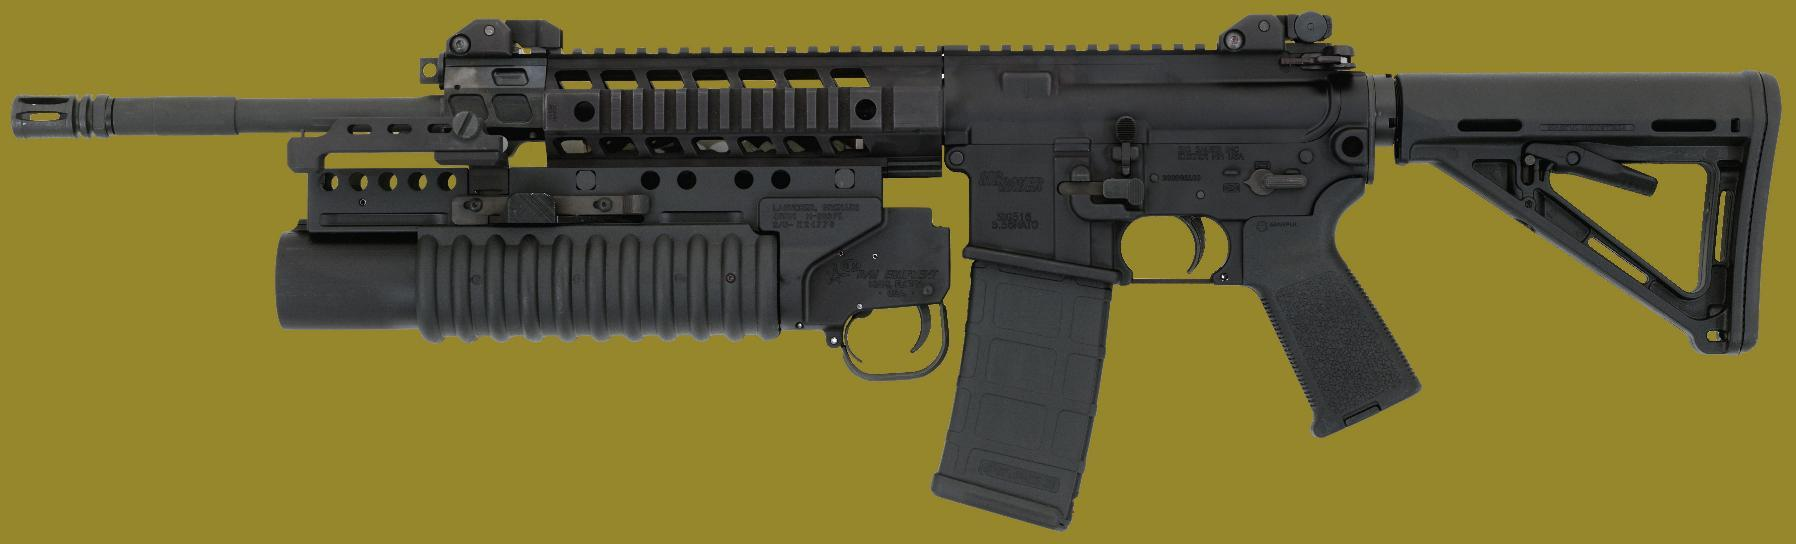 M203PI 40mm Grenade Launcher EGLM mounted on a rifle with rails certified by the manufacturer for use with a 40mm grenade launcher.